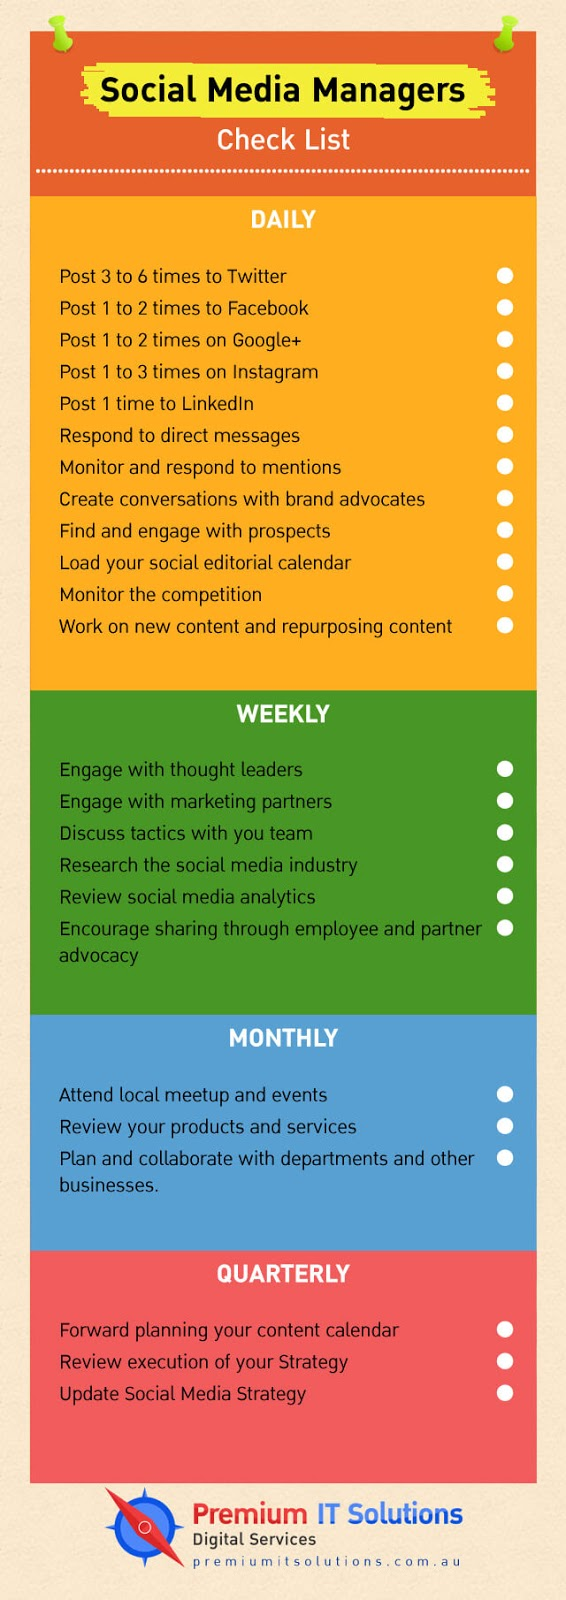 Social media checklist for business